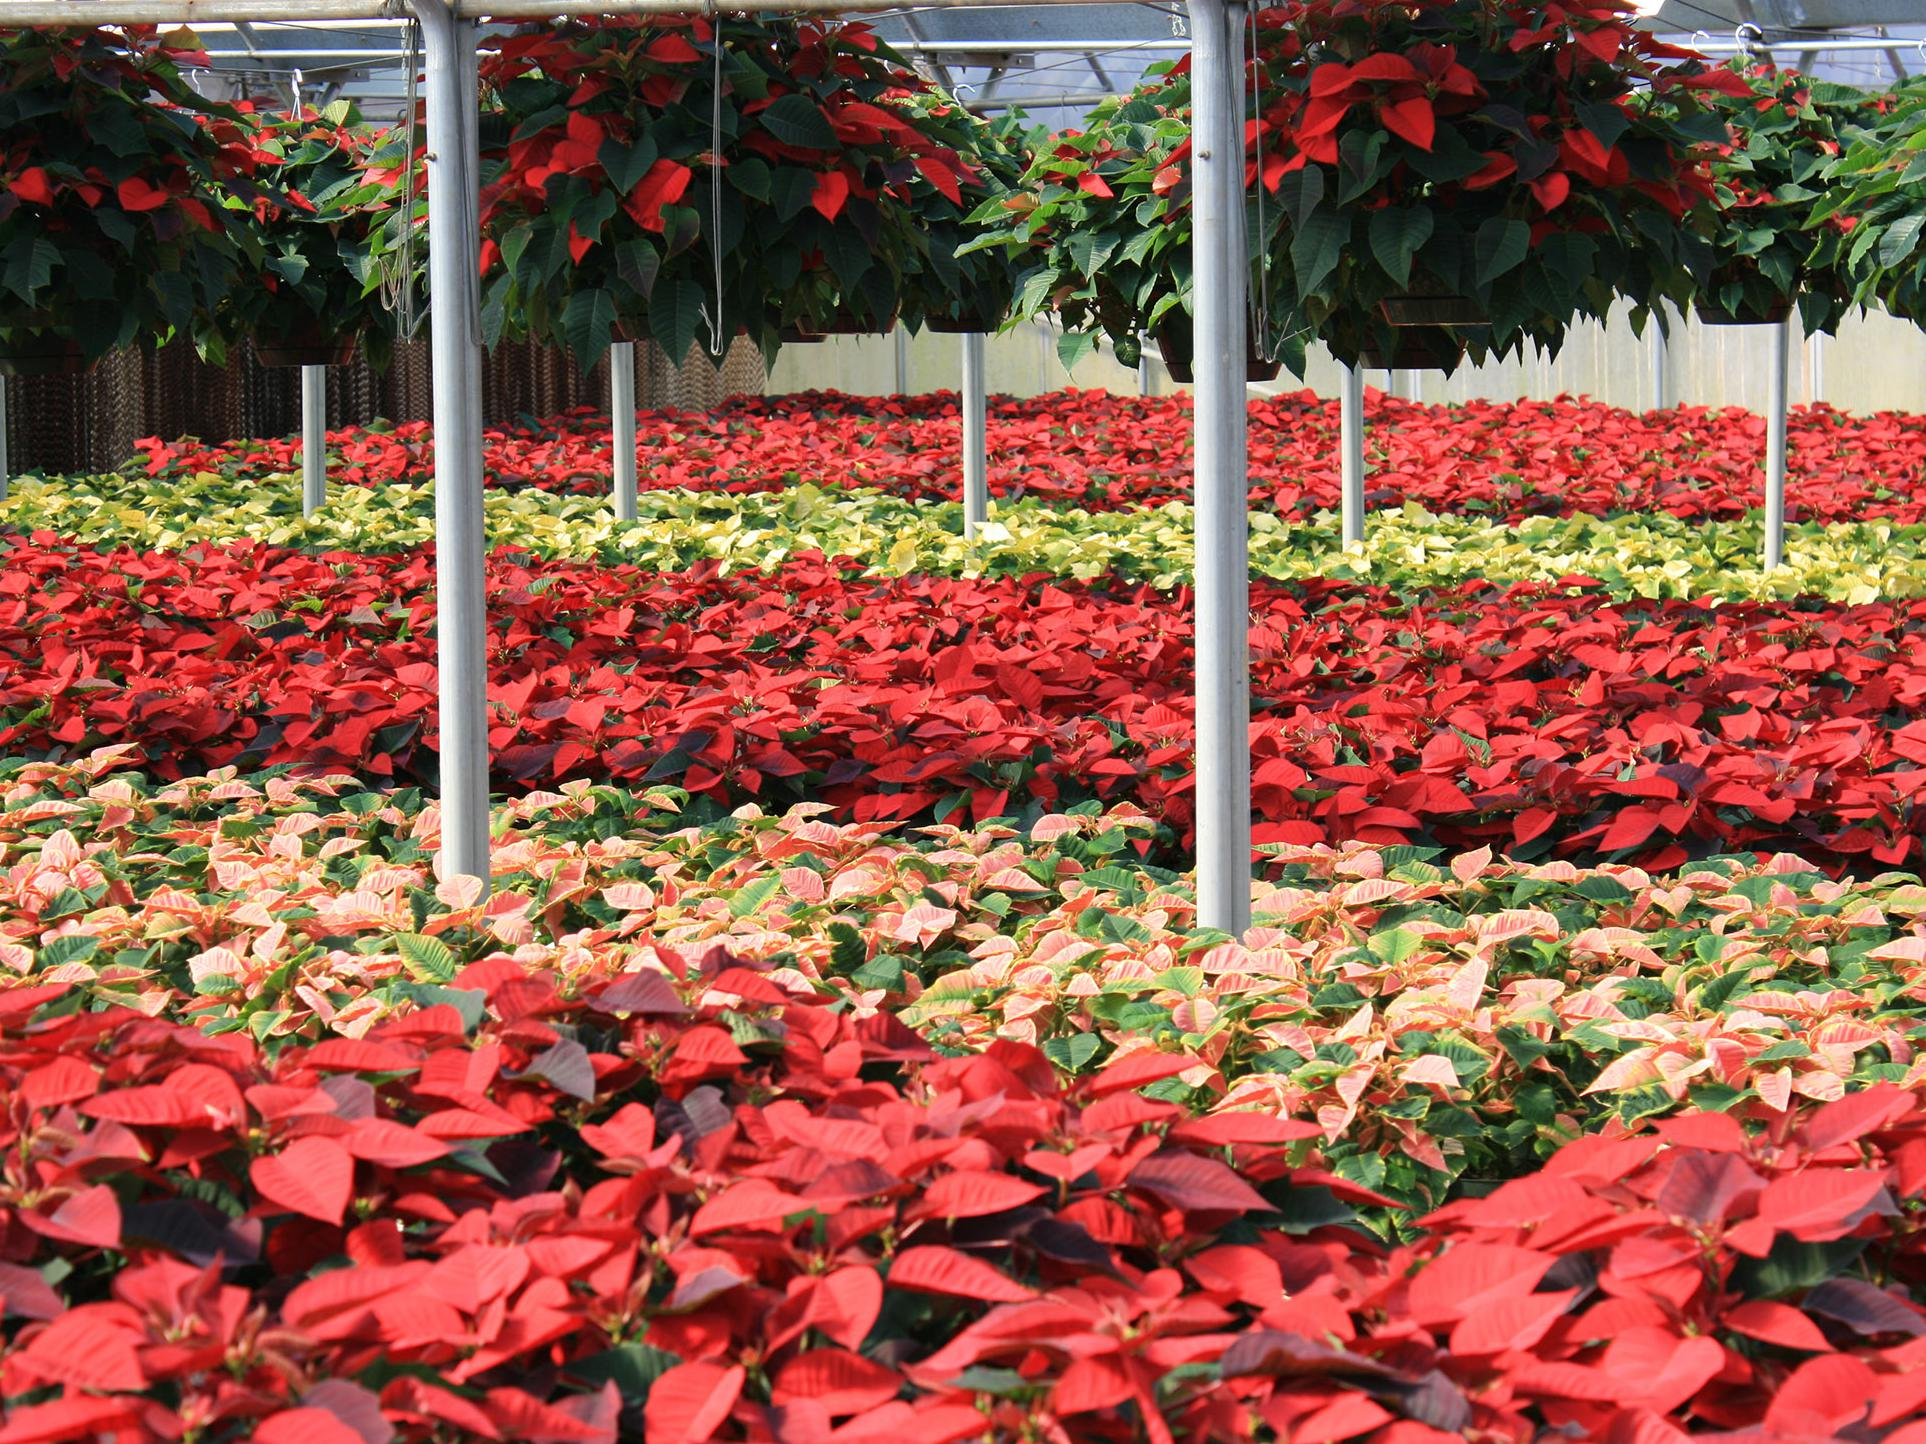 Nurseries have provided thousands of Christmas poinsettias in a variety of colors to decorate homes for the holidays.